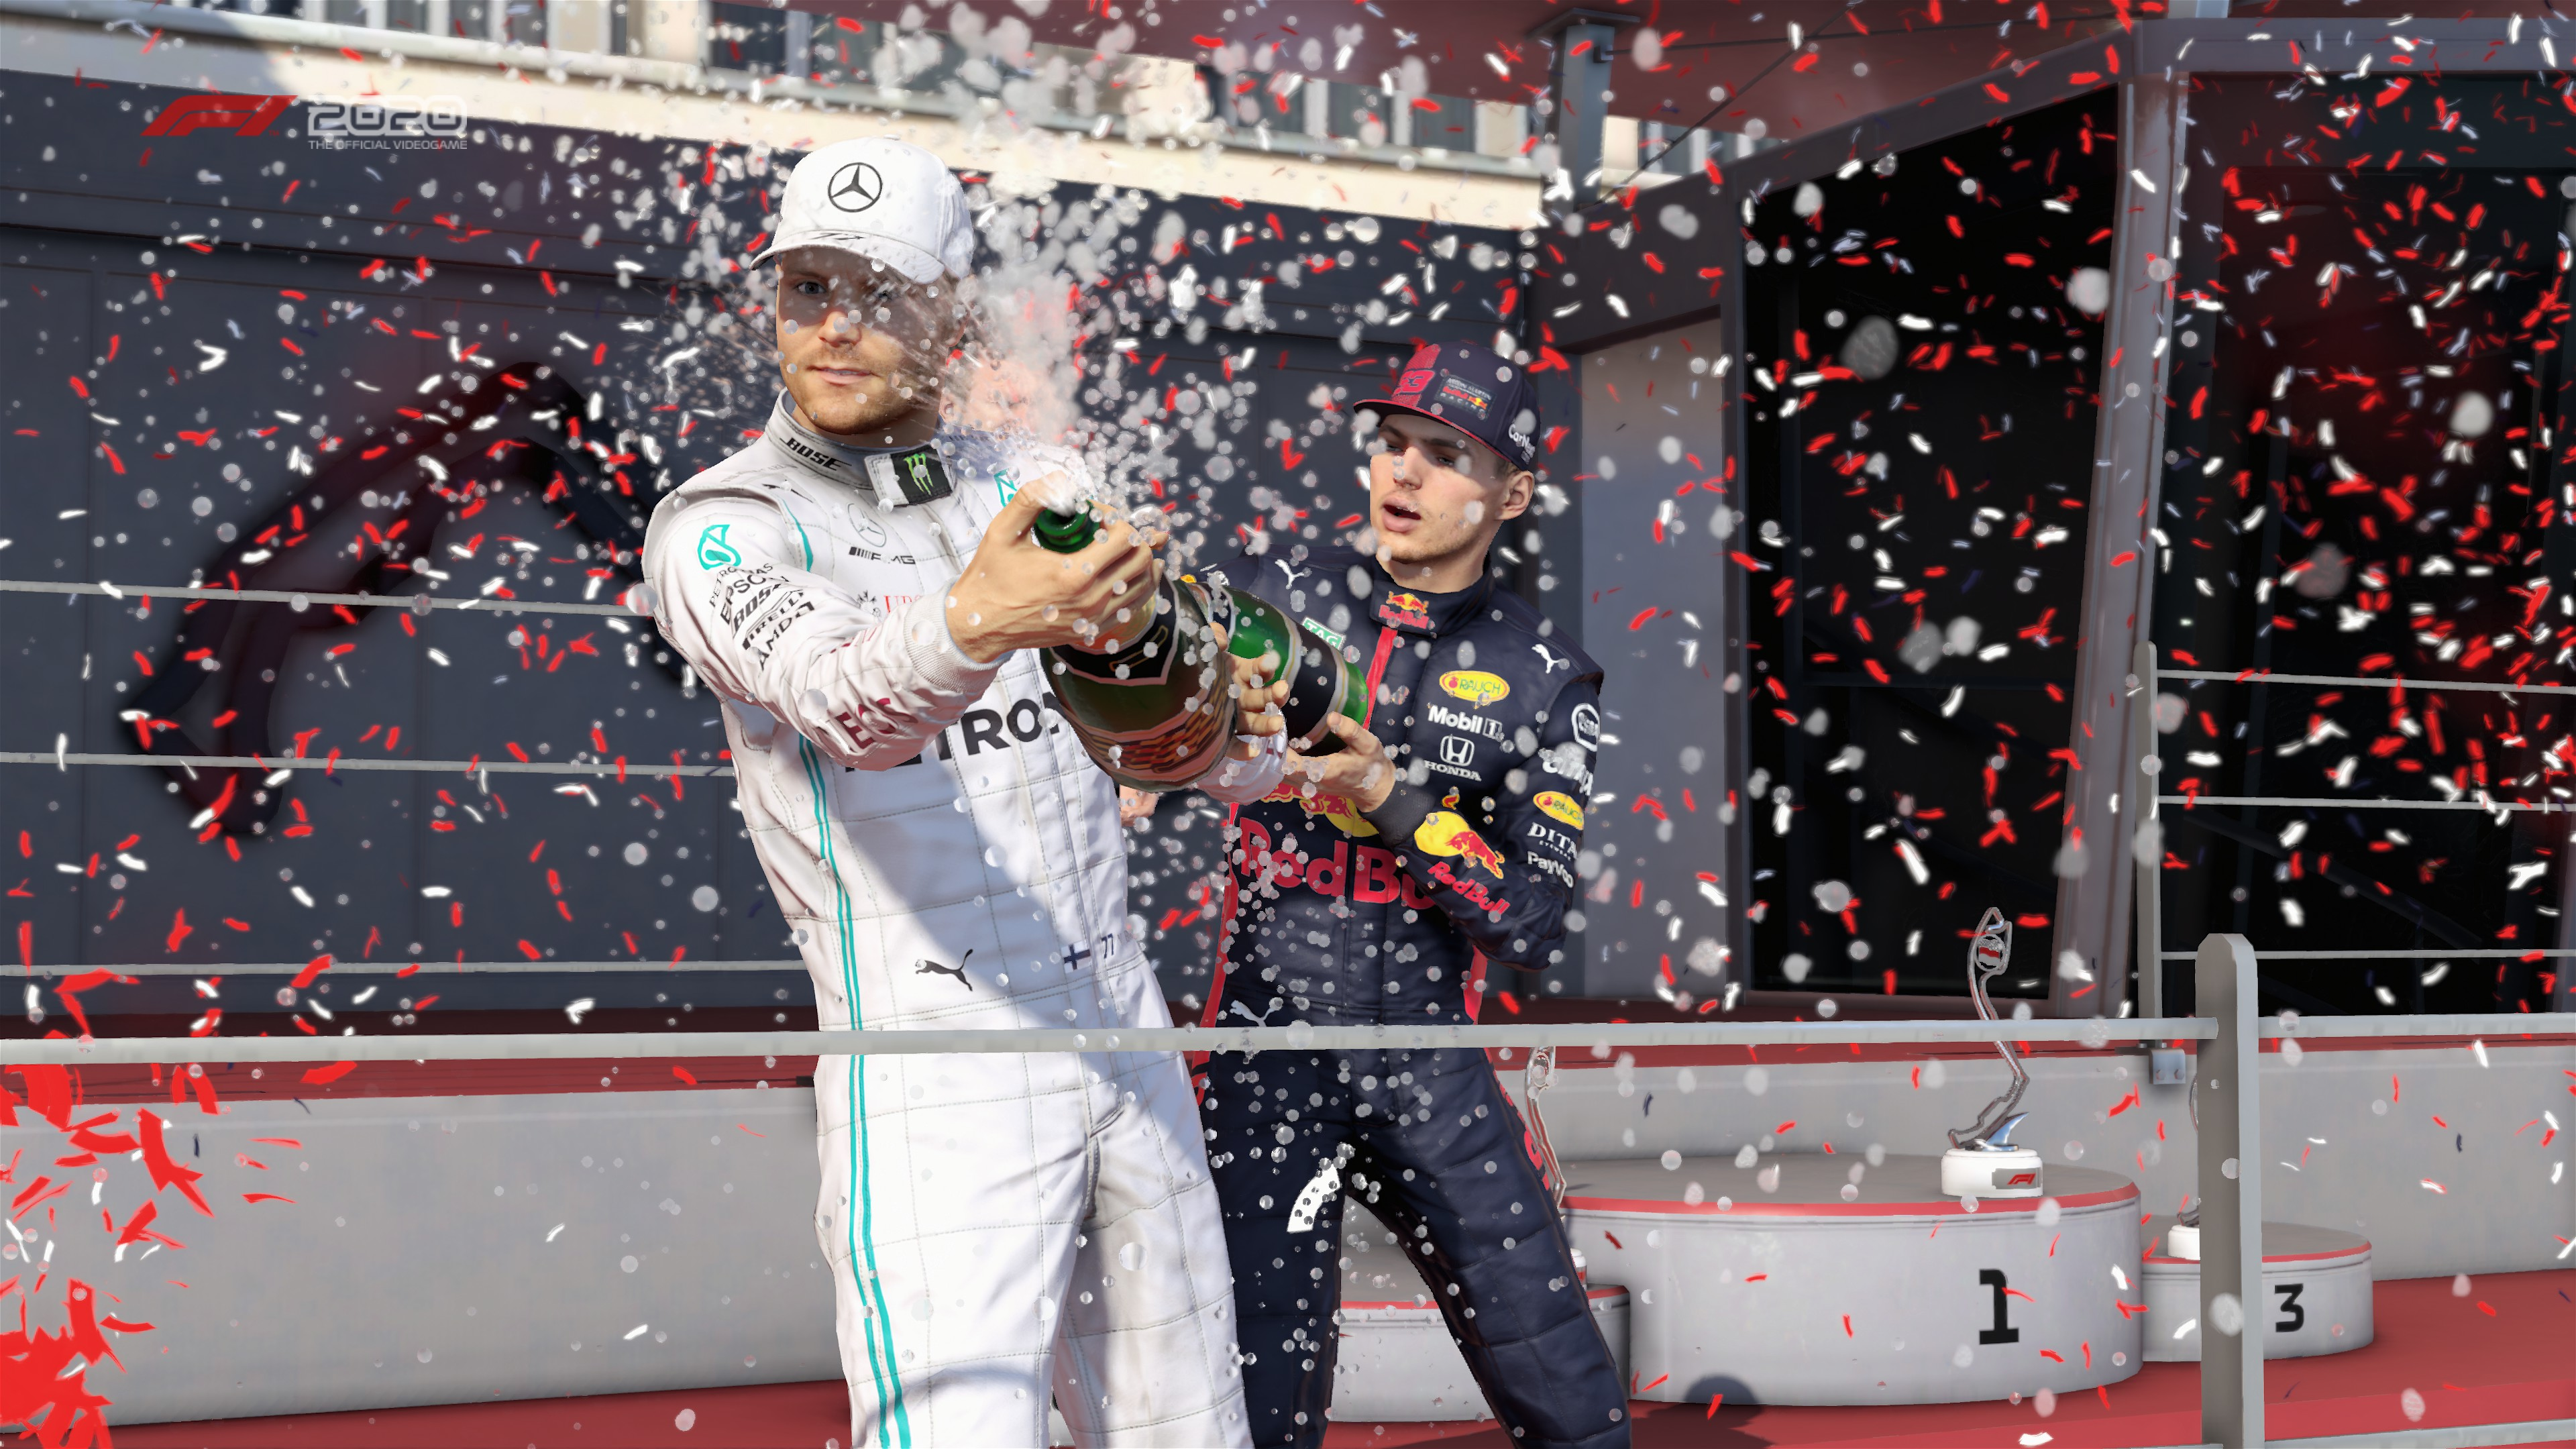 Formula 1 podiums are known to get wet n' wild.